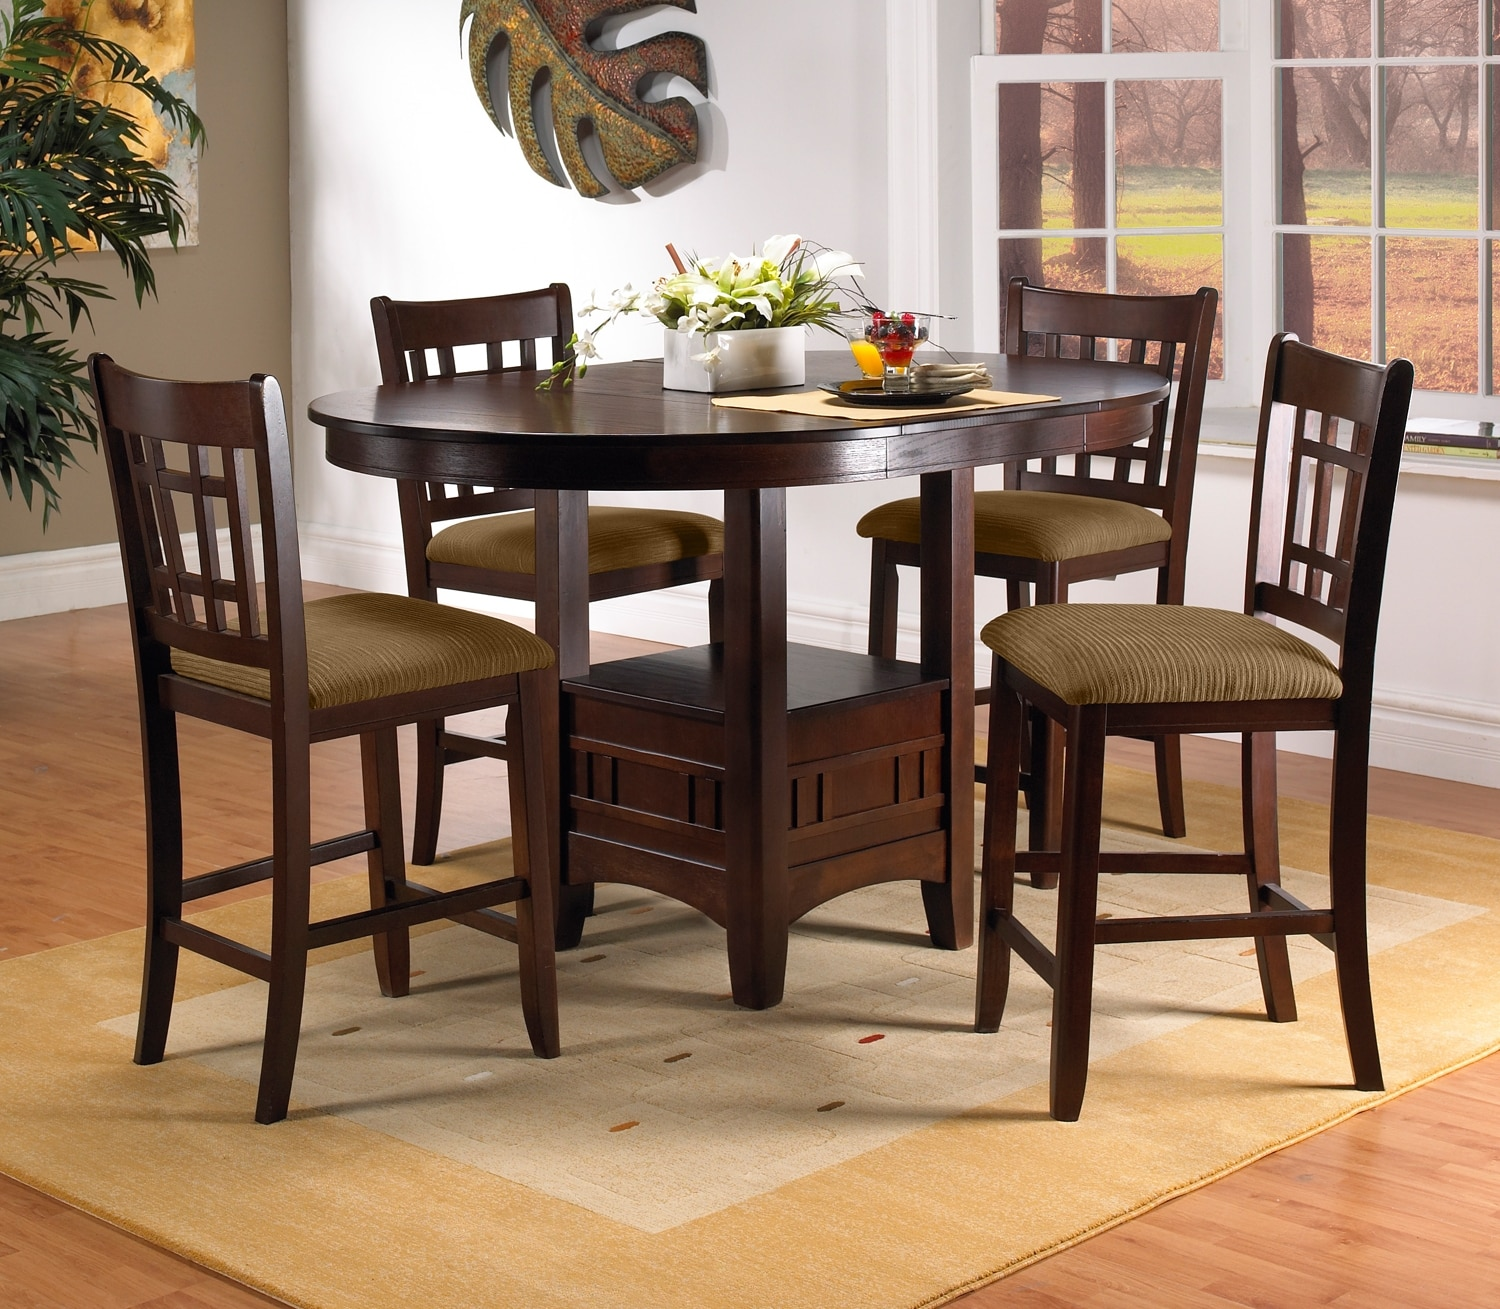 Casual Dining Room Furniture The Brighton II Collection Brighton II